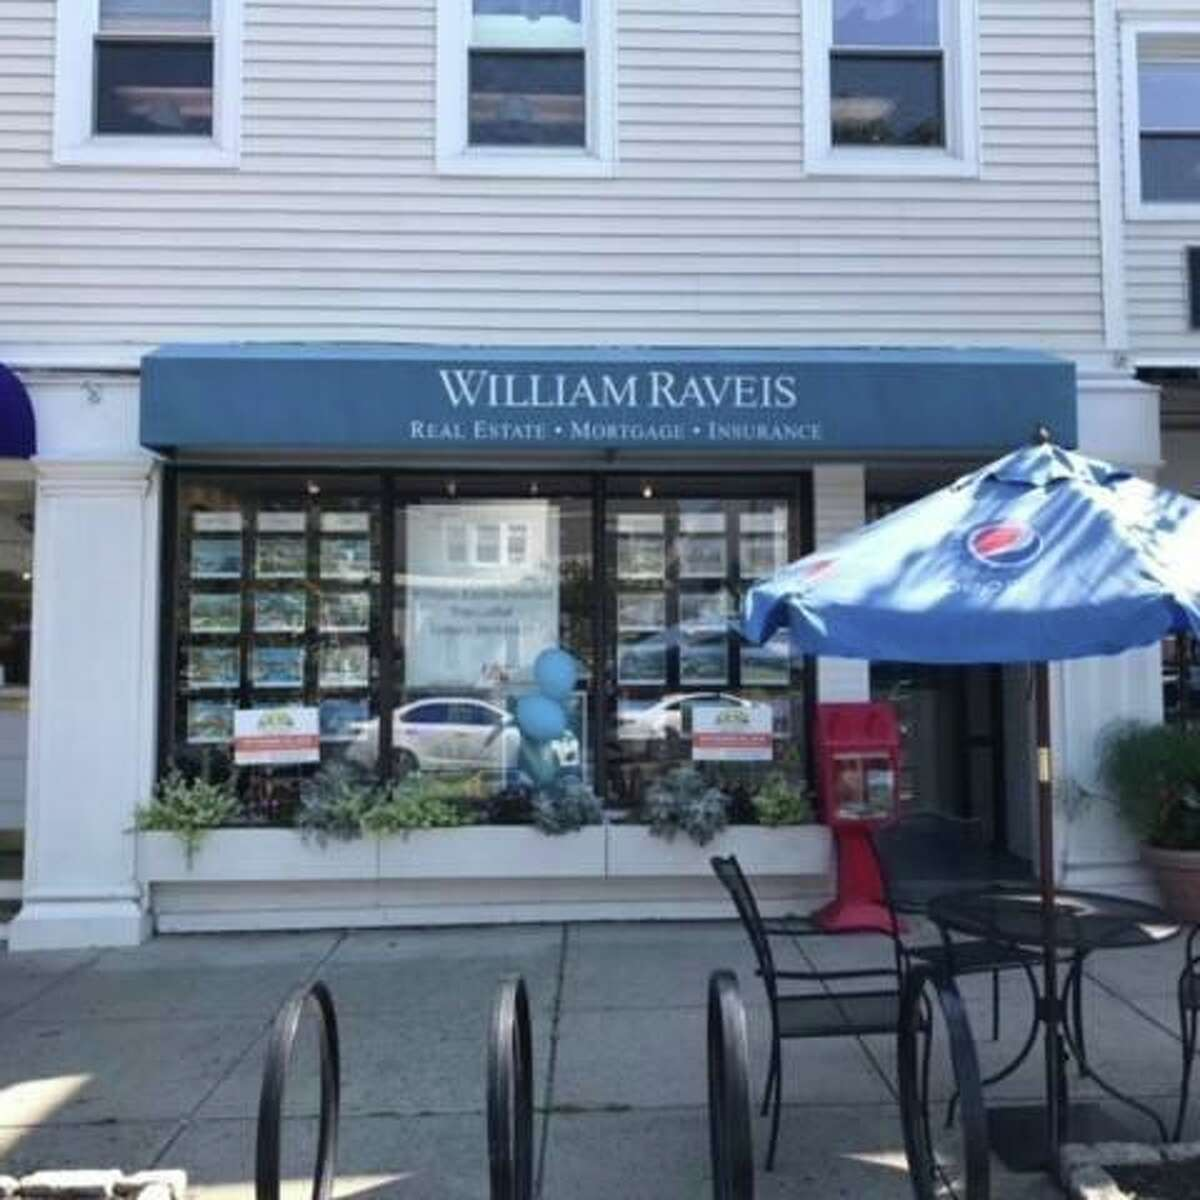 The William Raveis office located at 410 Main St. in Ridgefield has closed.